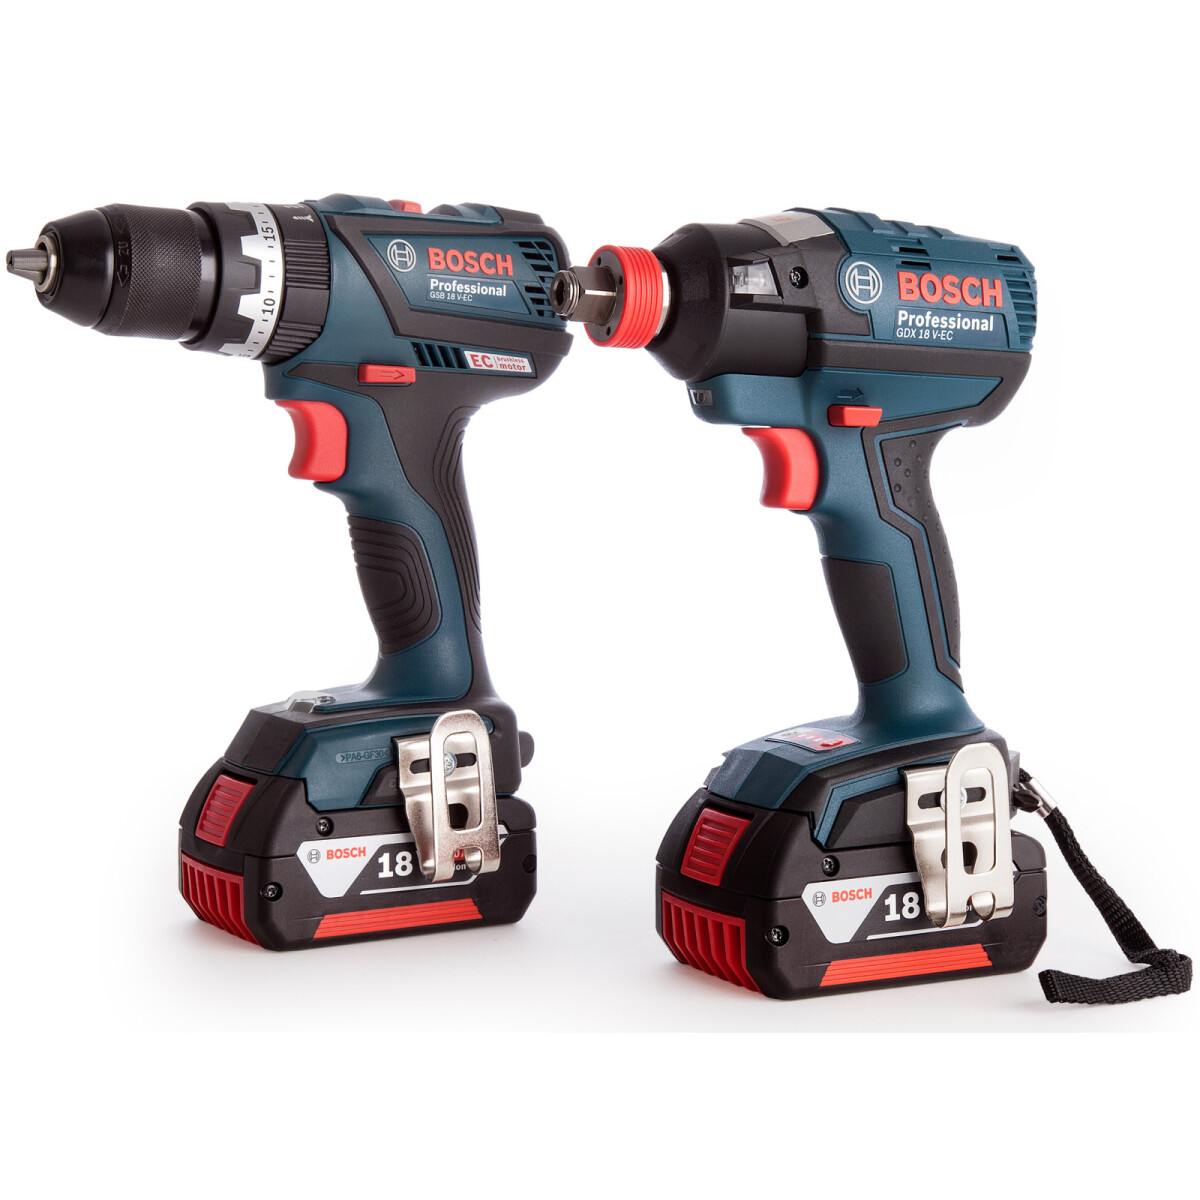 Bosch GSB18 V-60C + GDX18 V-200C 18V Combi Drill With Impact Wrench/Driver with 2x 5.0Ah Batteries in L-BOXX